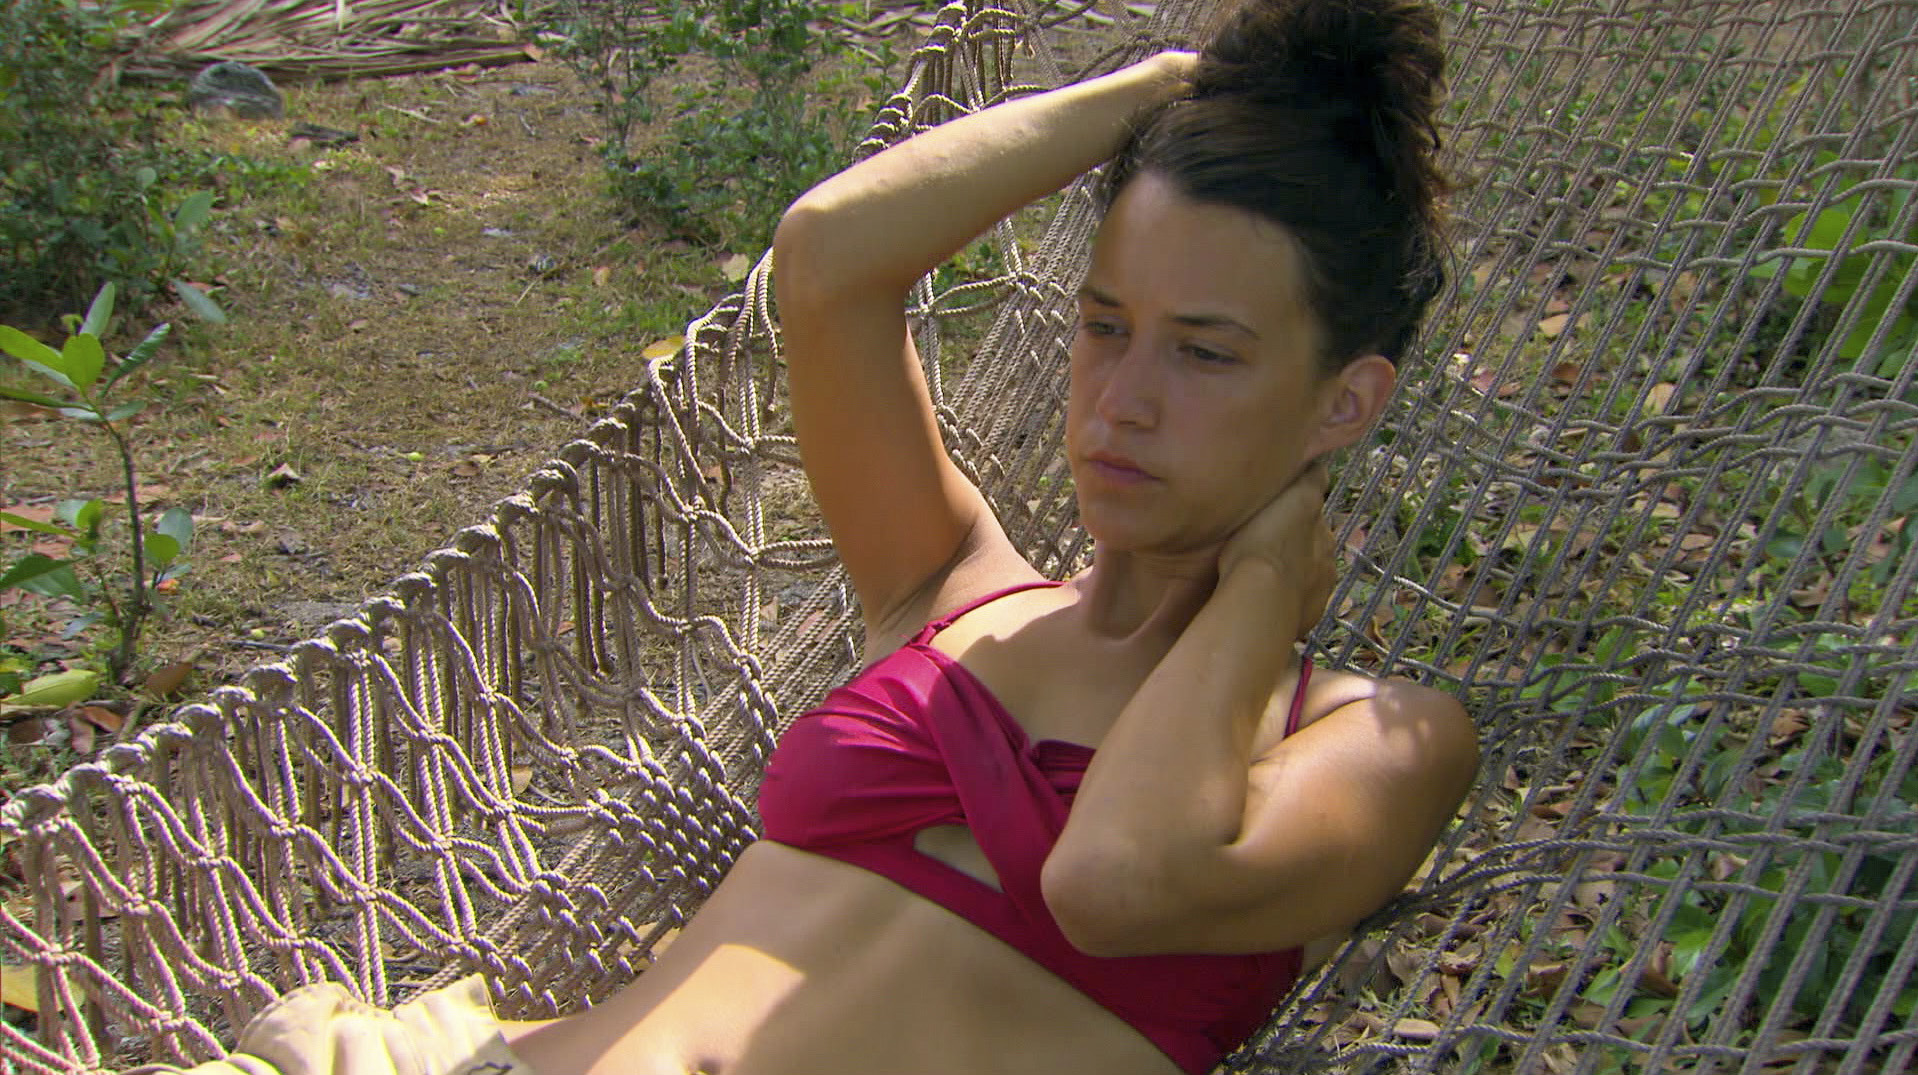 Ciera in Season 27 Episode 13